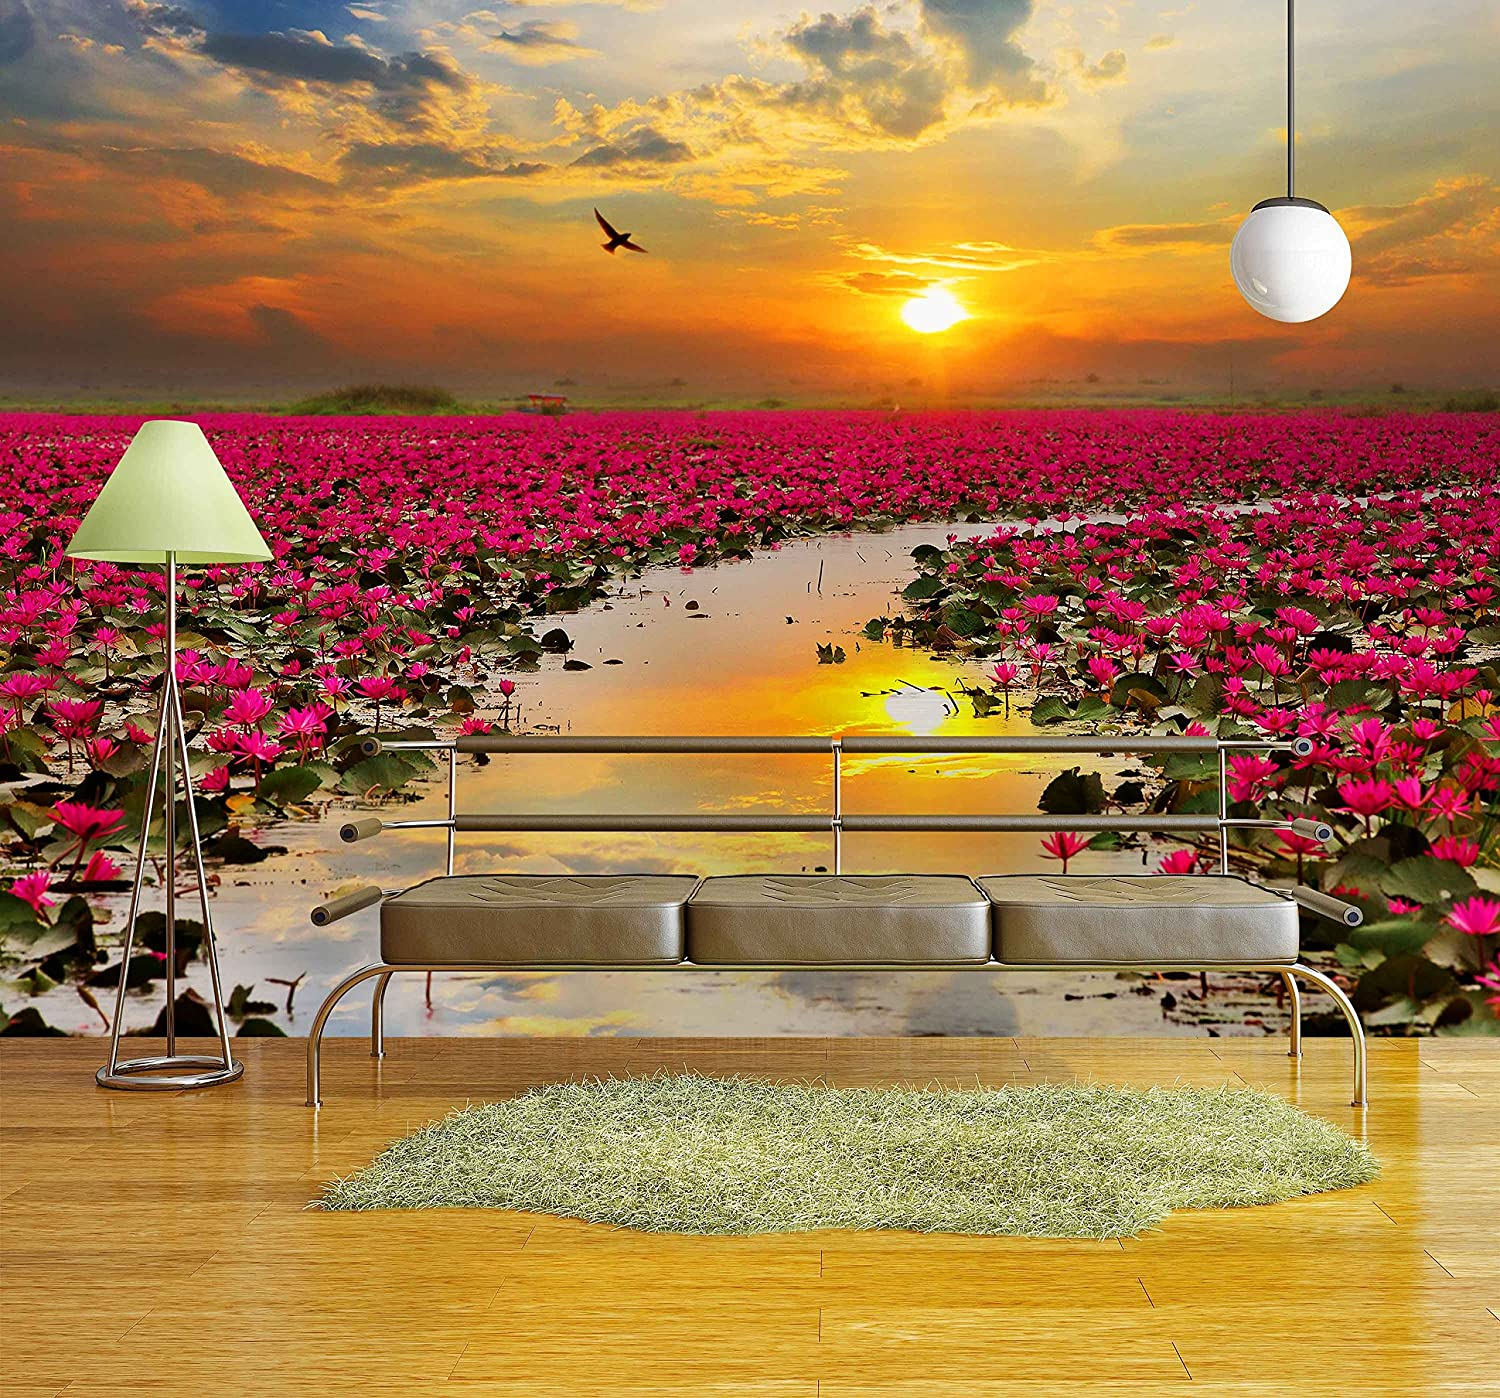 Sunshine Rising Lotus Flower in Thailand - Removable Wall Mural | Self-adhesive Large